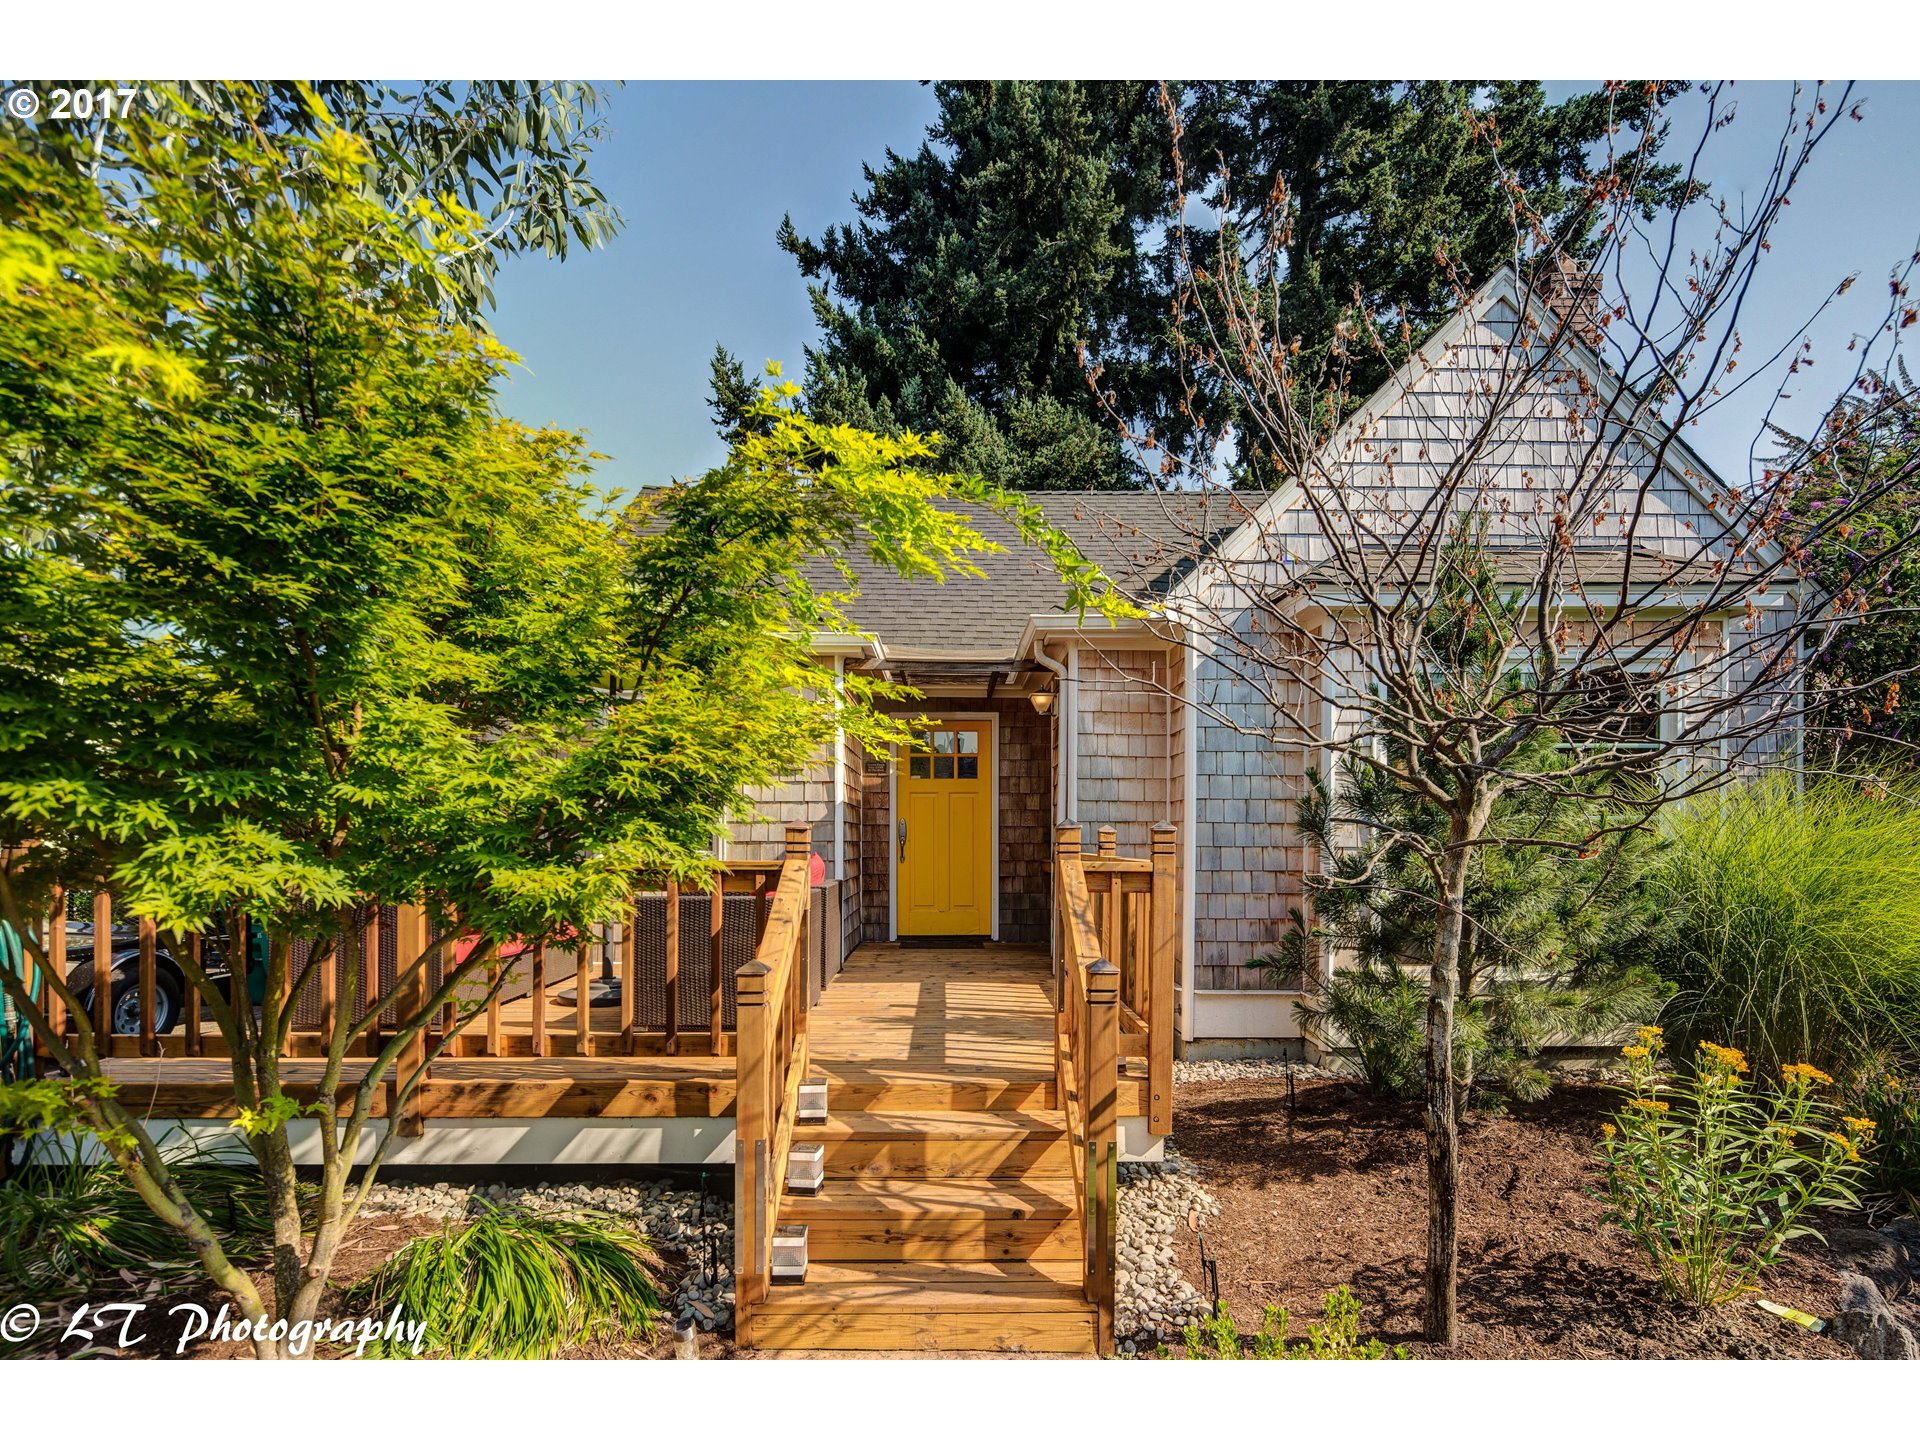 It's like being on vacation everyday. An oasis in the city. Terrific inside & outside living. Master on the main, 2nd bedroom upstairs and 3rd + 4th bedroom in basement non-conforming. Deck in the front and large deck in the back for outdoor living. Fenced side yard with grapes. Fenced backyard, low maintenance landscaping front and back. Large shop that could be future ADU. Kenton, Columbia, Arbor Lodge Parks, Portland Village School.